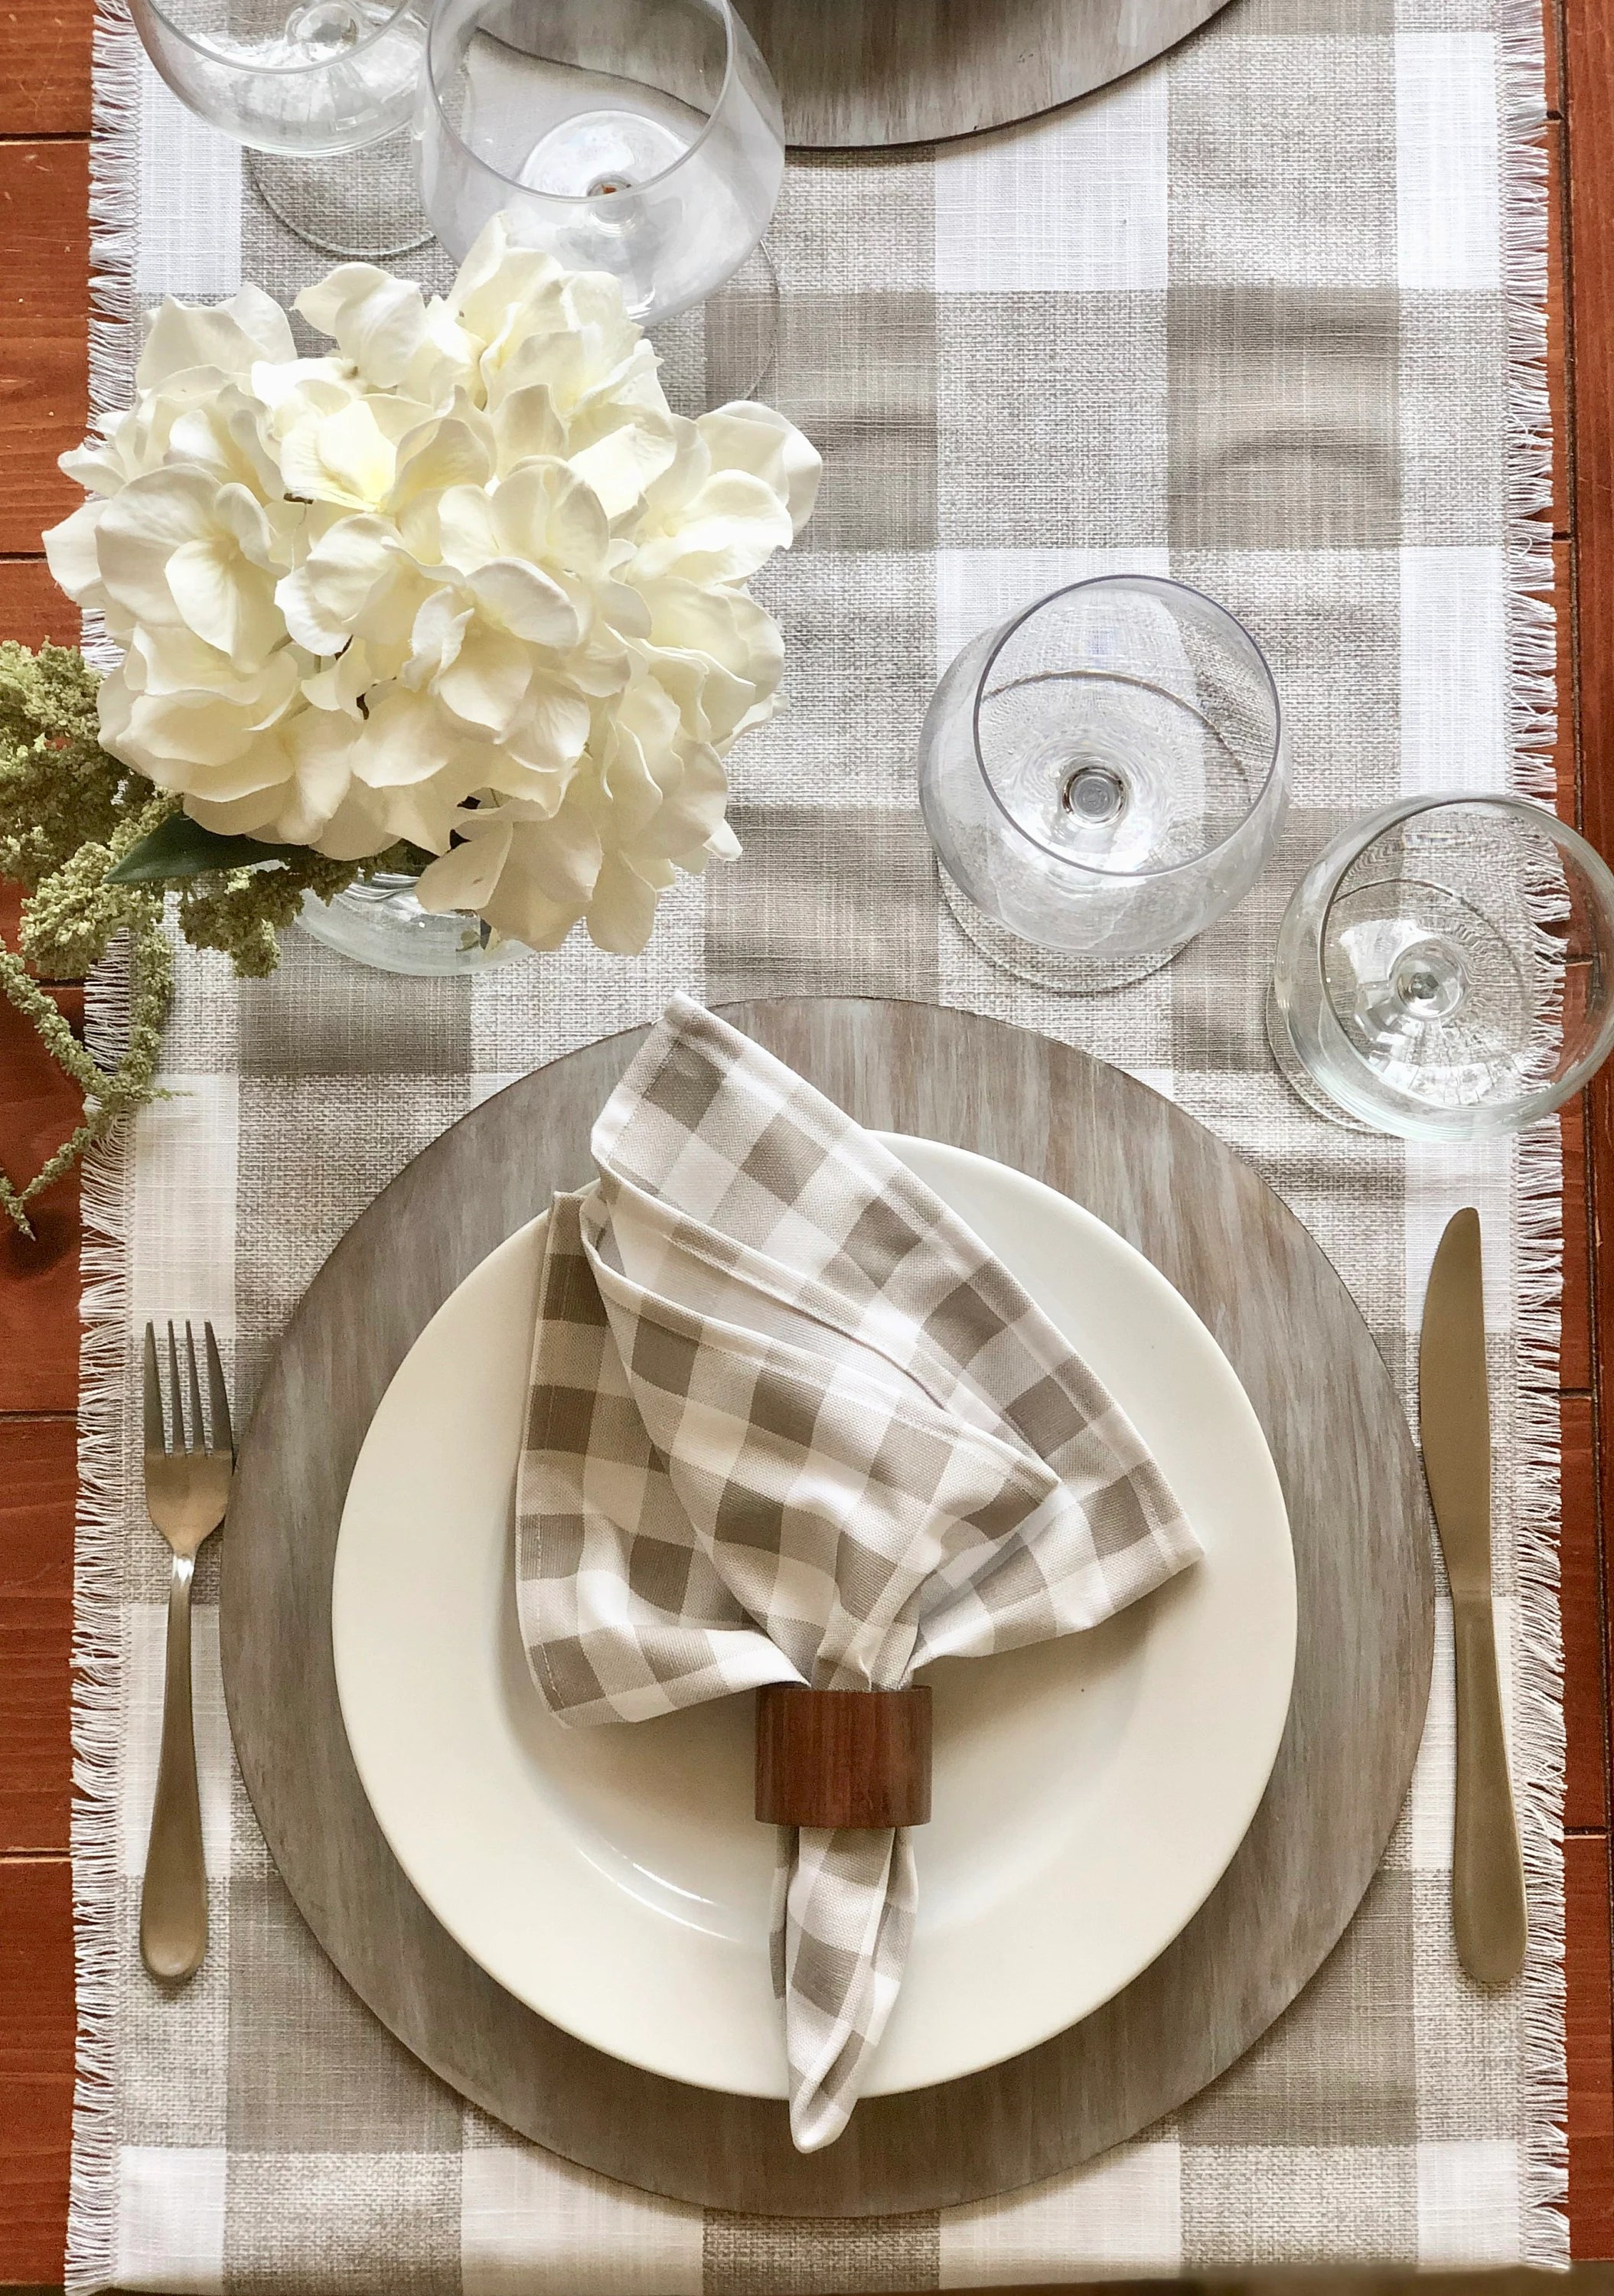 Plaid Taupe Plaid Taupe And White Linen Table Runner With Fringes Buffalo